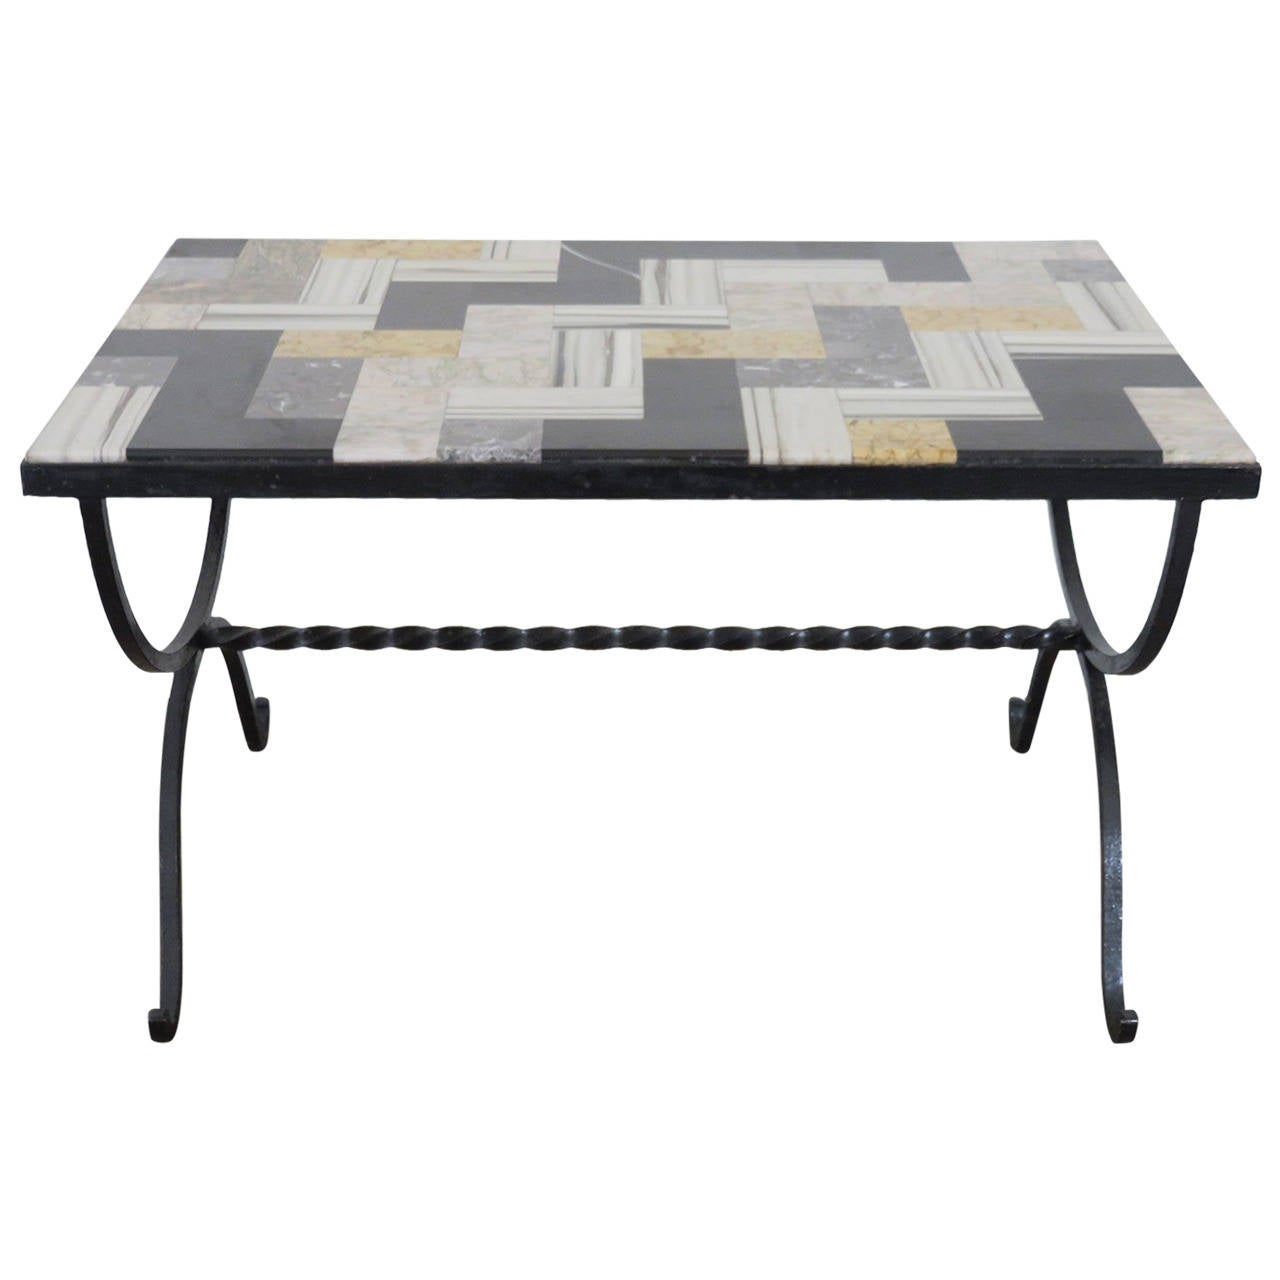 1940s Italian Coffee Table With Inlaid Marble Top At 1stdibs